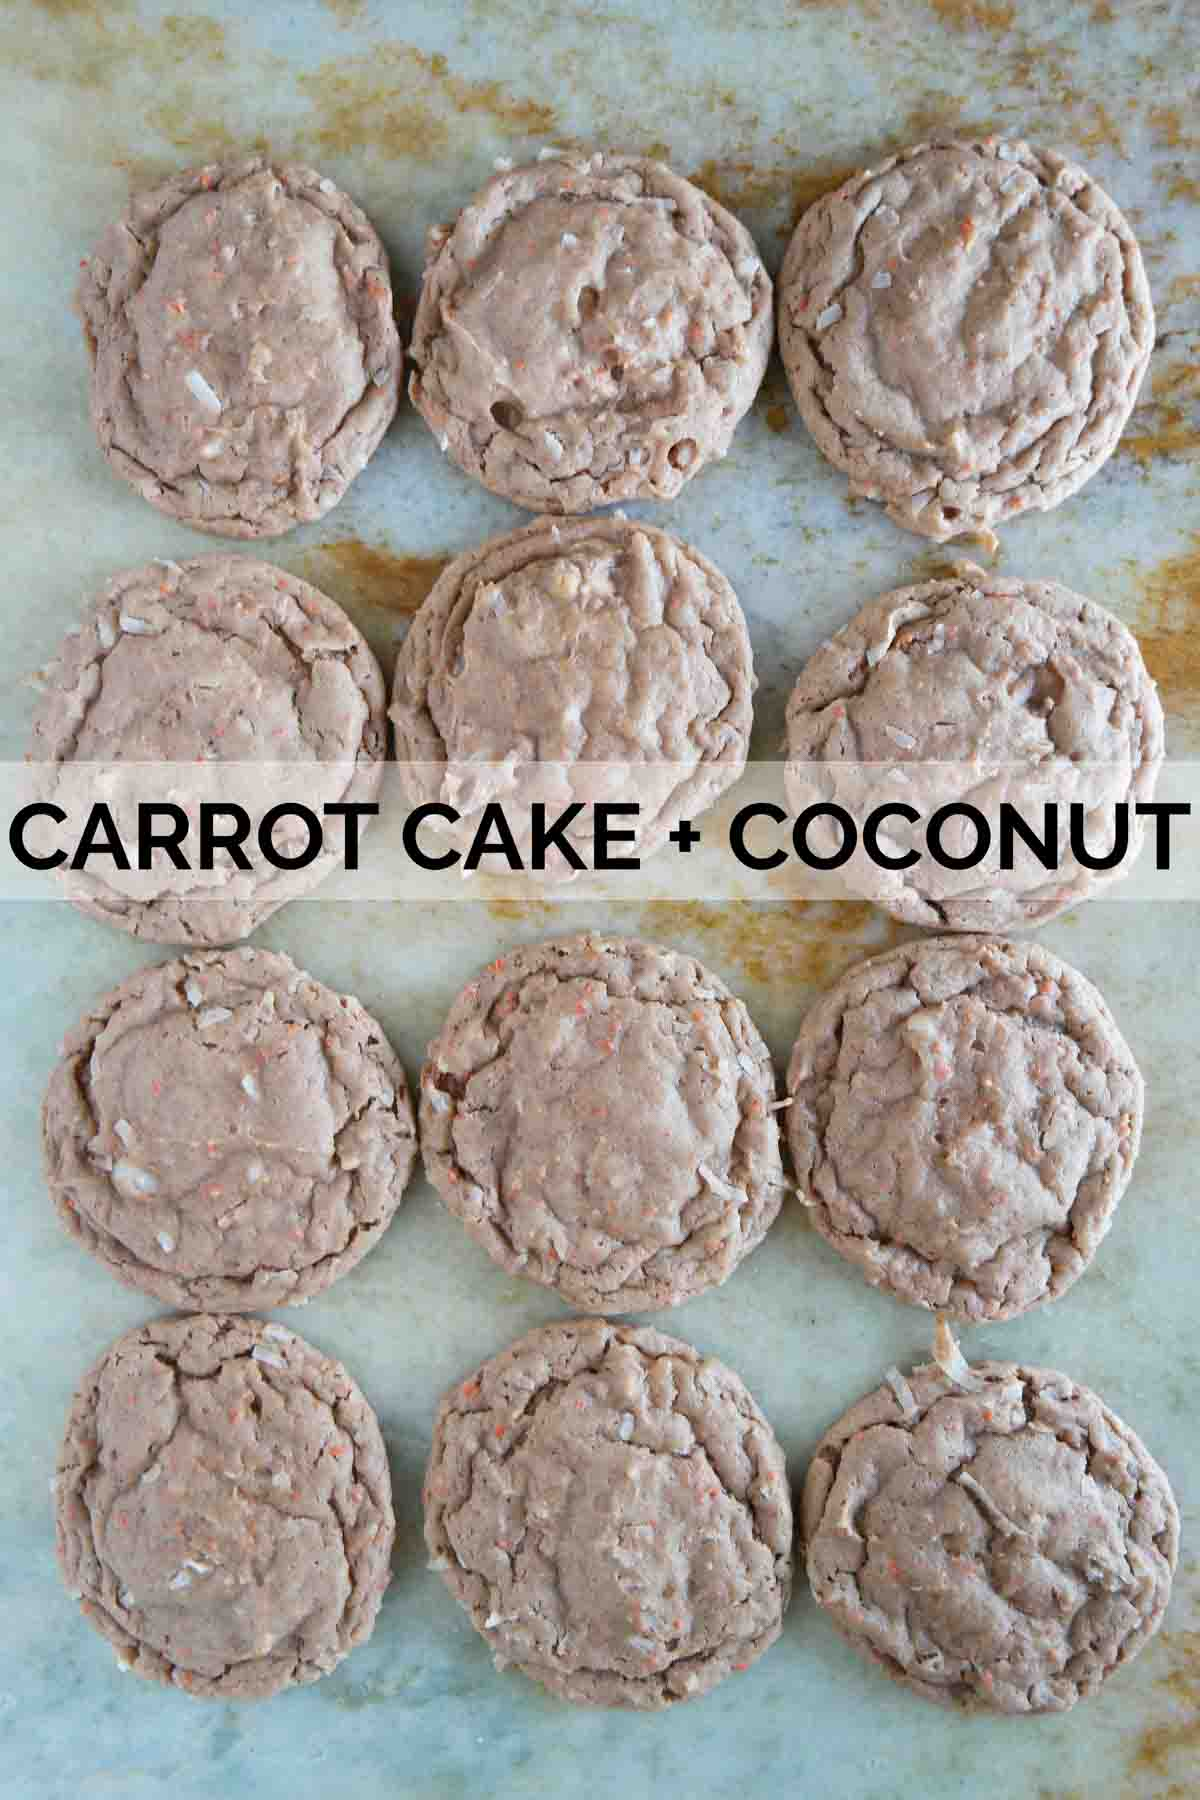 Cake mix cookies made from carrot cake and coconut